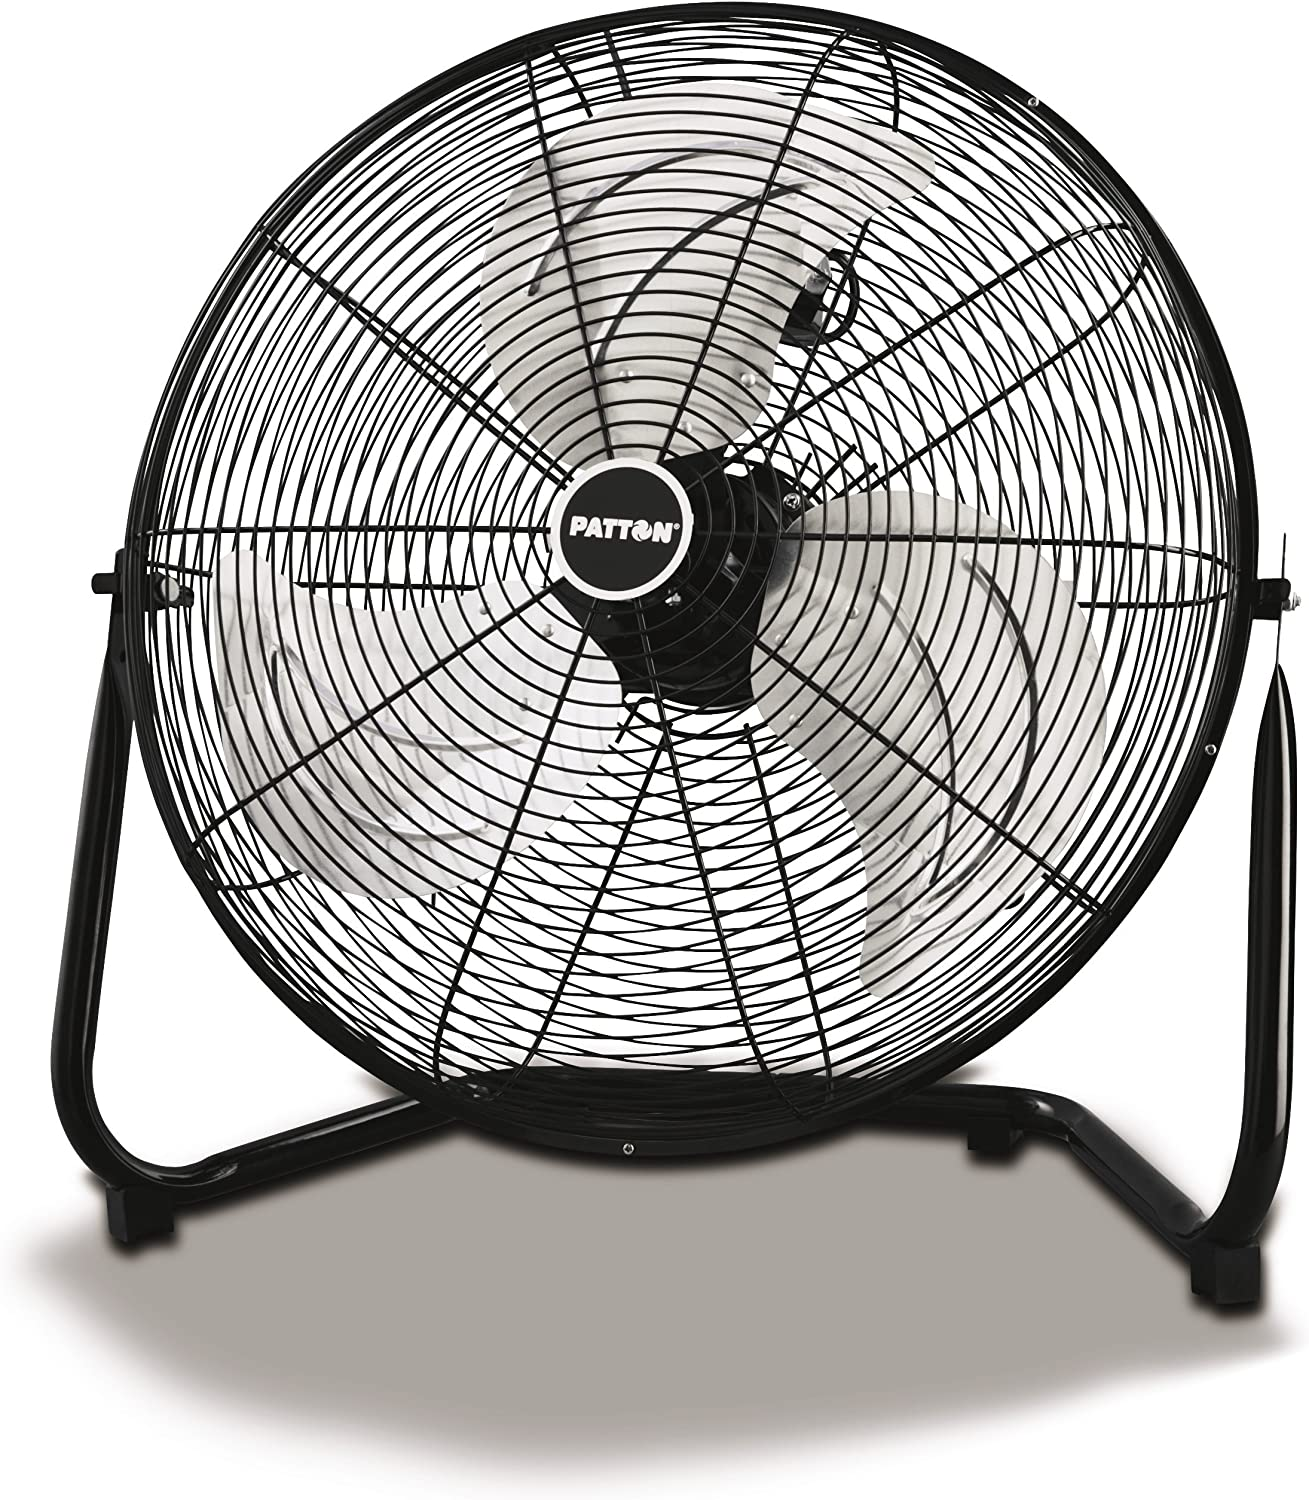 Patton 20-inch High Velocity Fan, PUF2010B-BM Renewed